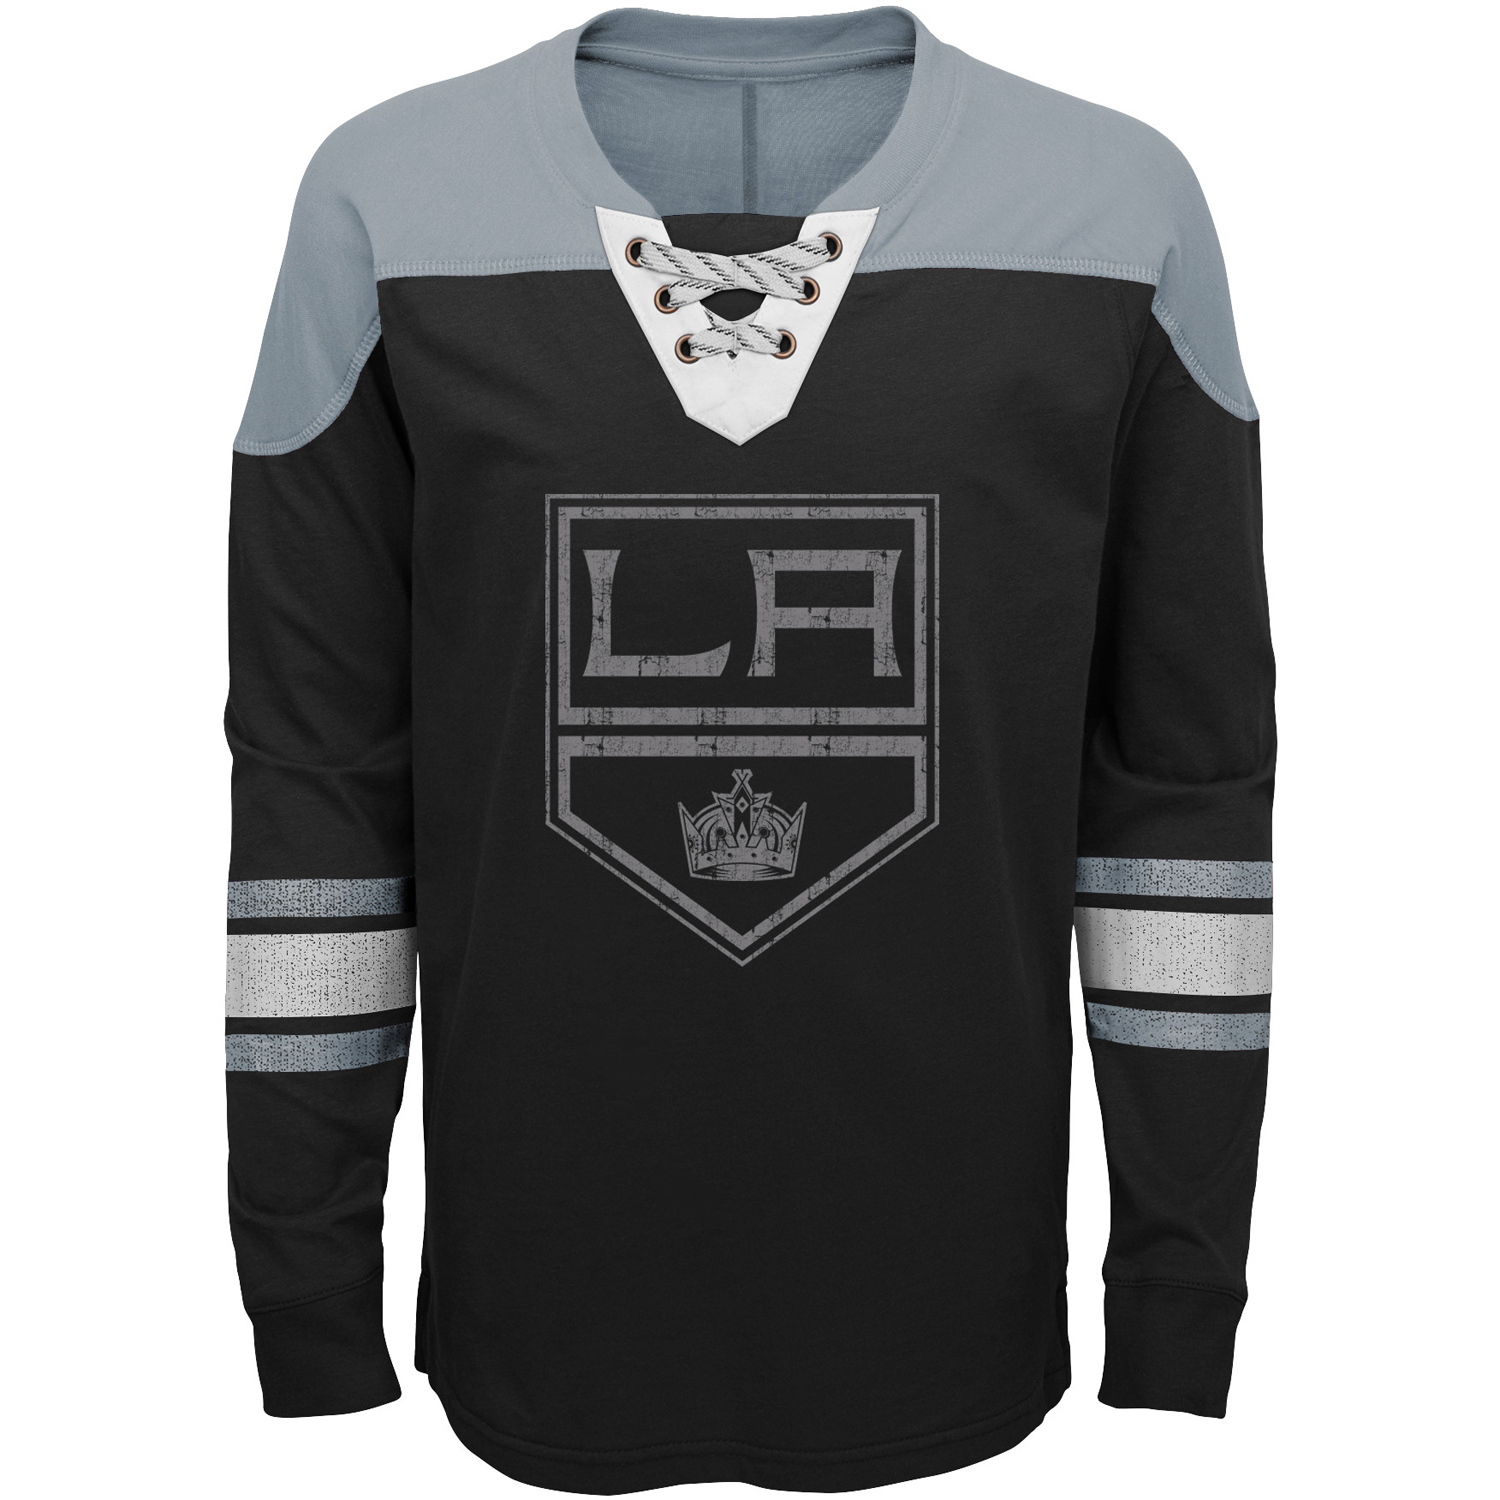 Los Angeles Kings Youth Perennial Hockey Lace-Up Crew Sweatshirt Black Gray by Outerstuff